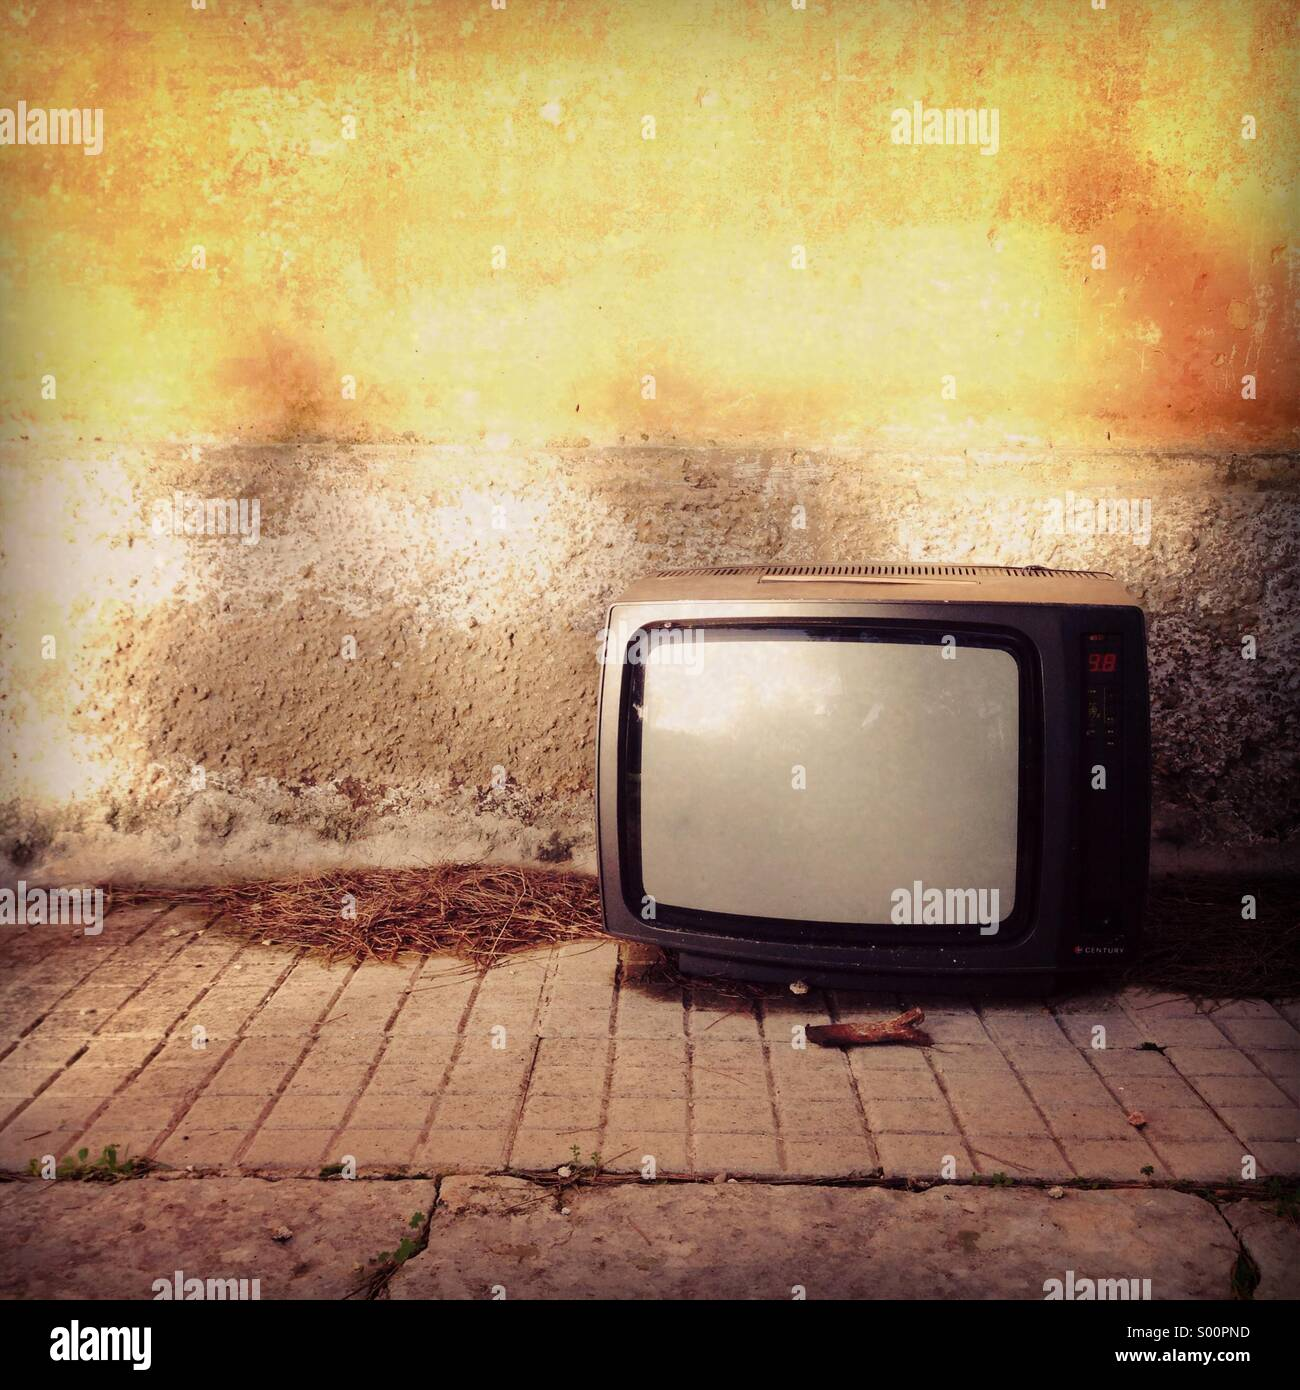 Abandoned old television on the floor - Stock Image